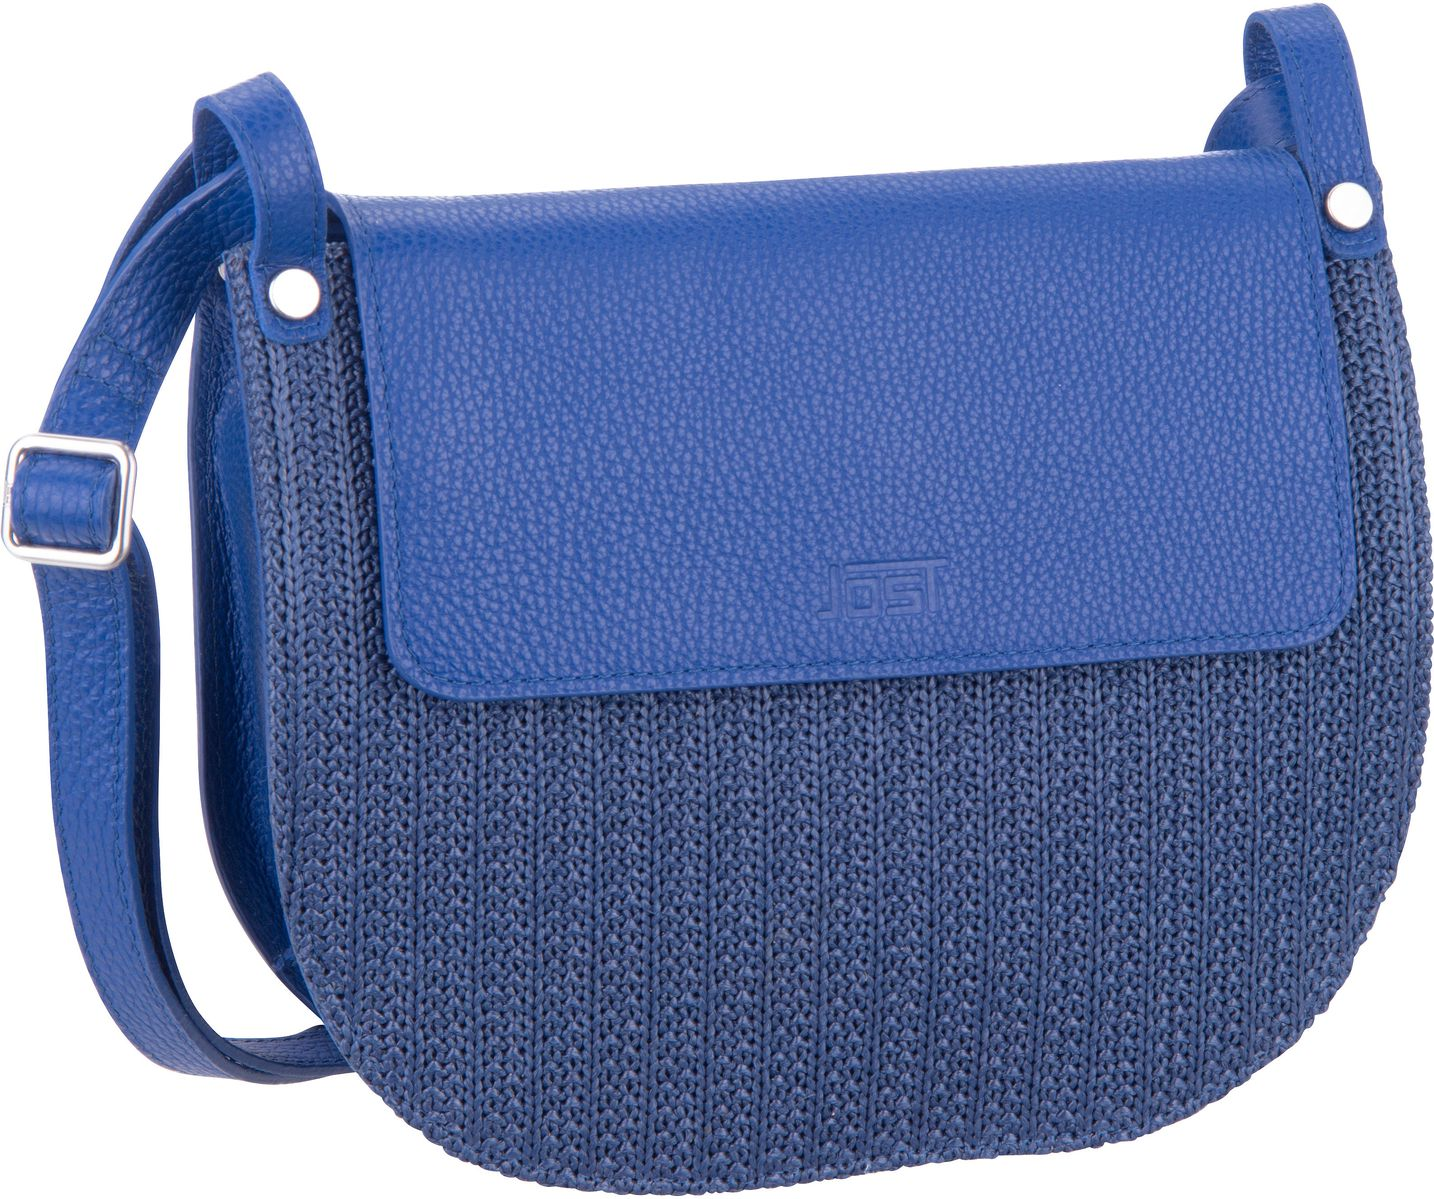 Umhängetasche Nil 3548 Shoulder Bag Blau